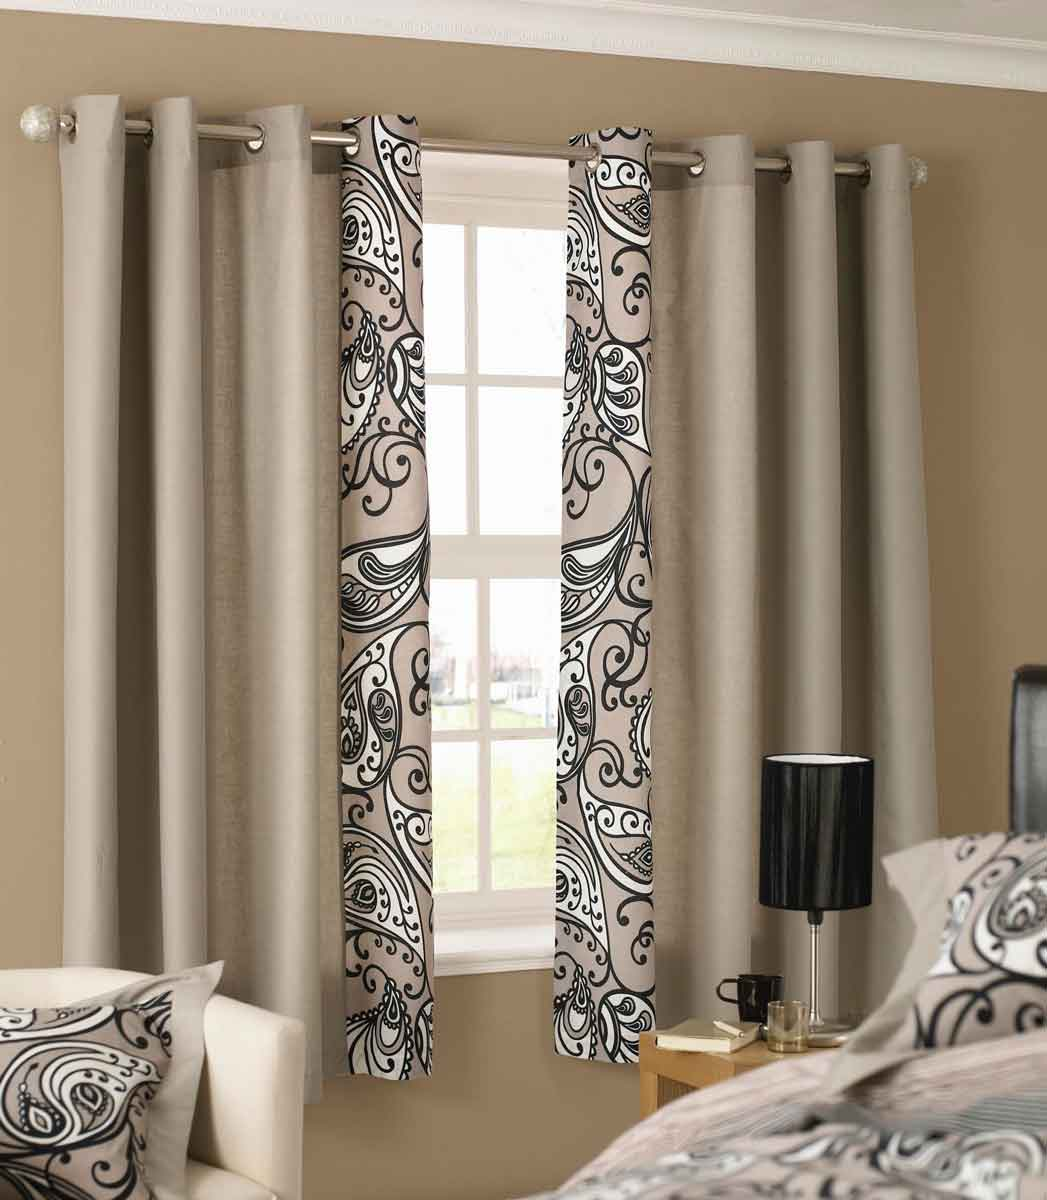 4 tips to properly hang curtains homeowners collegeworks com